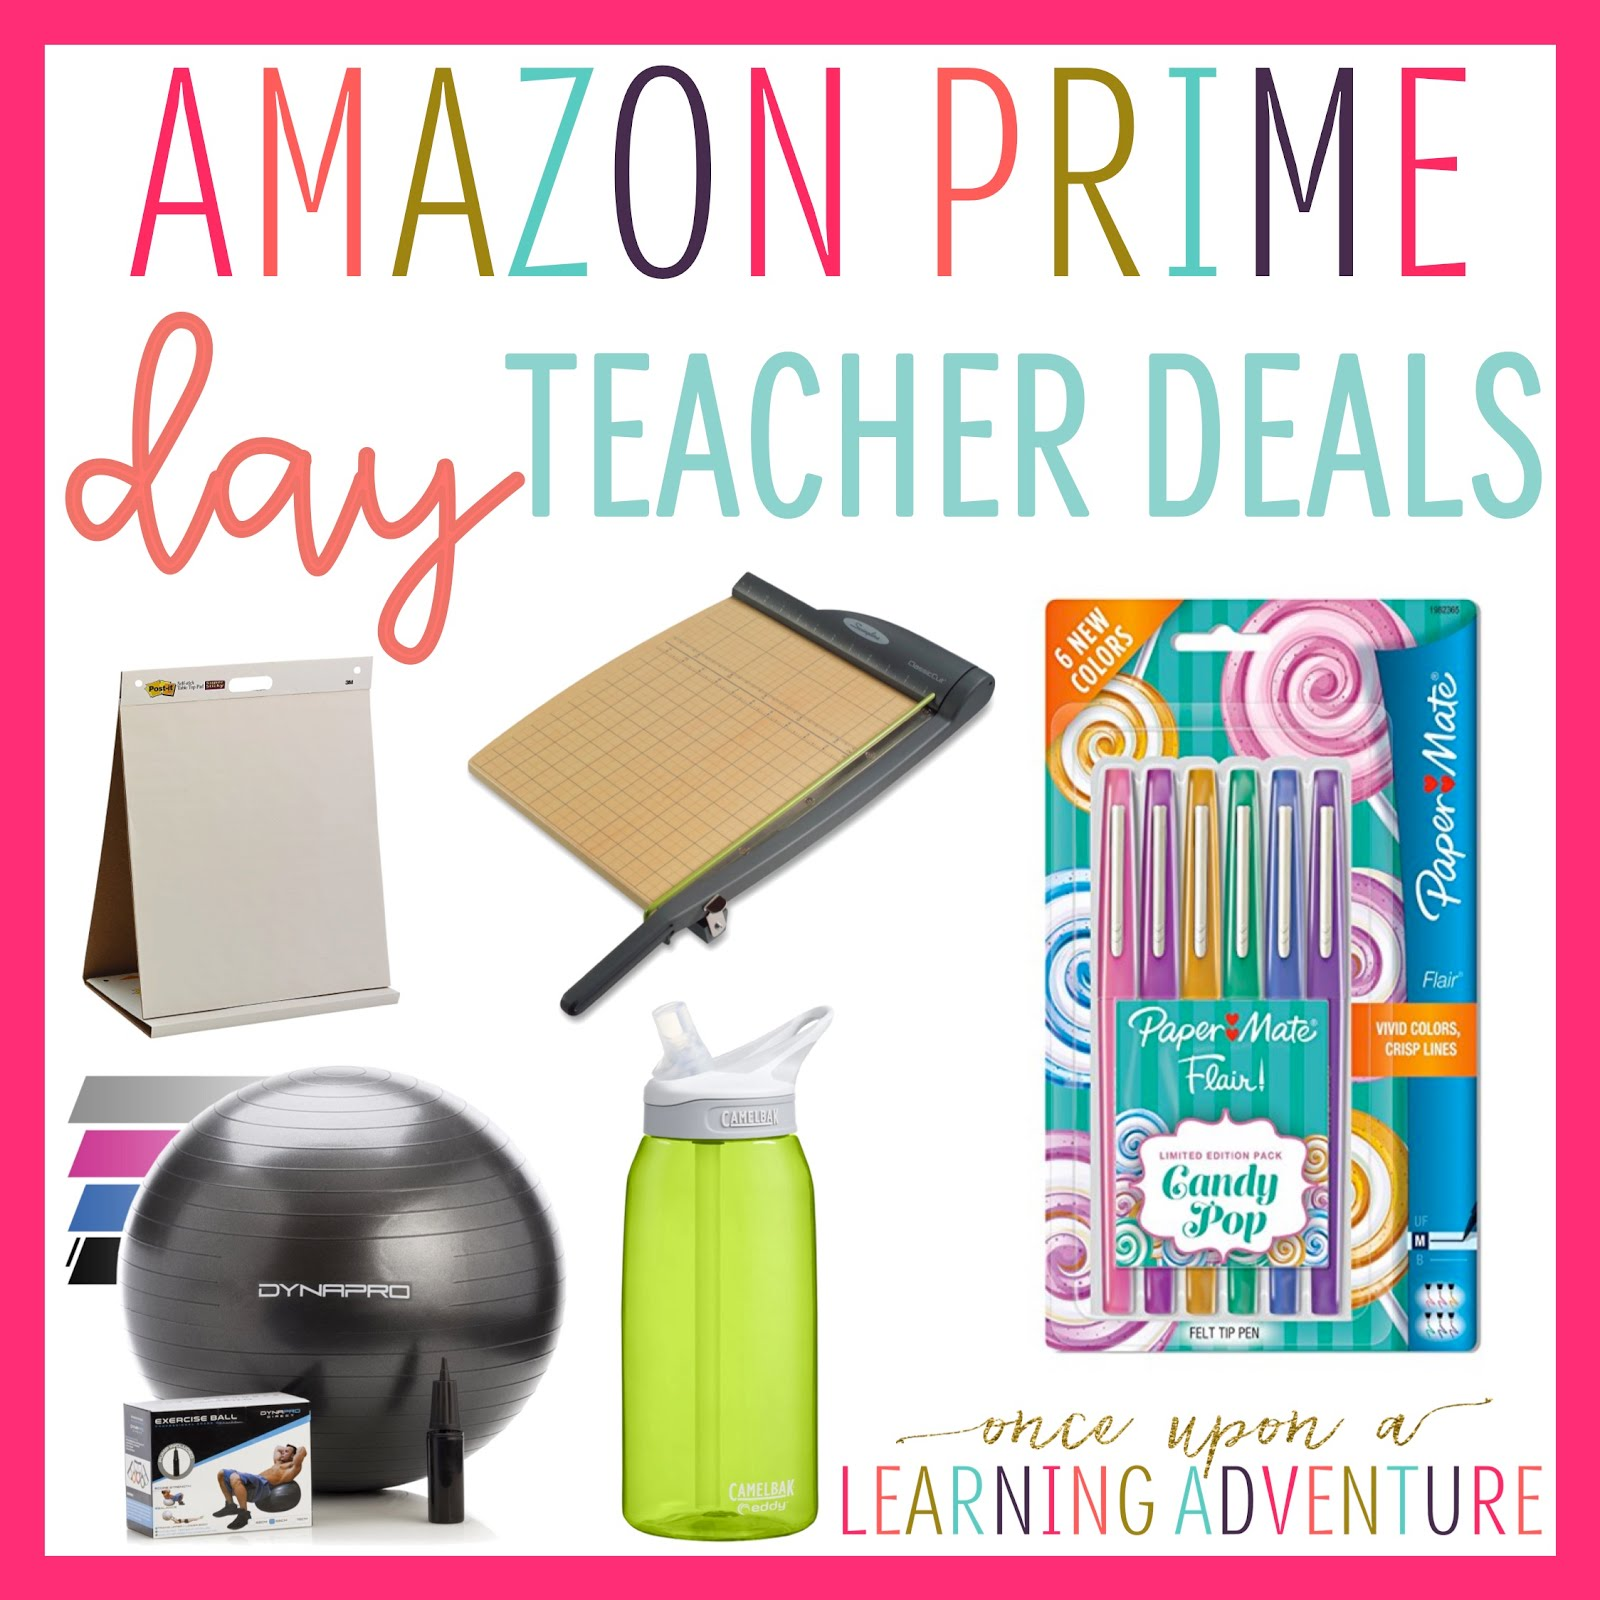 Once Upon A Learning Adventure Teachherpleaseblogspotcom This Post Contains Amazon Affiliate Links For Your Convenience Please Read The Full Disclosure Here